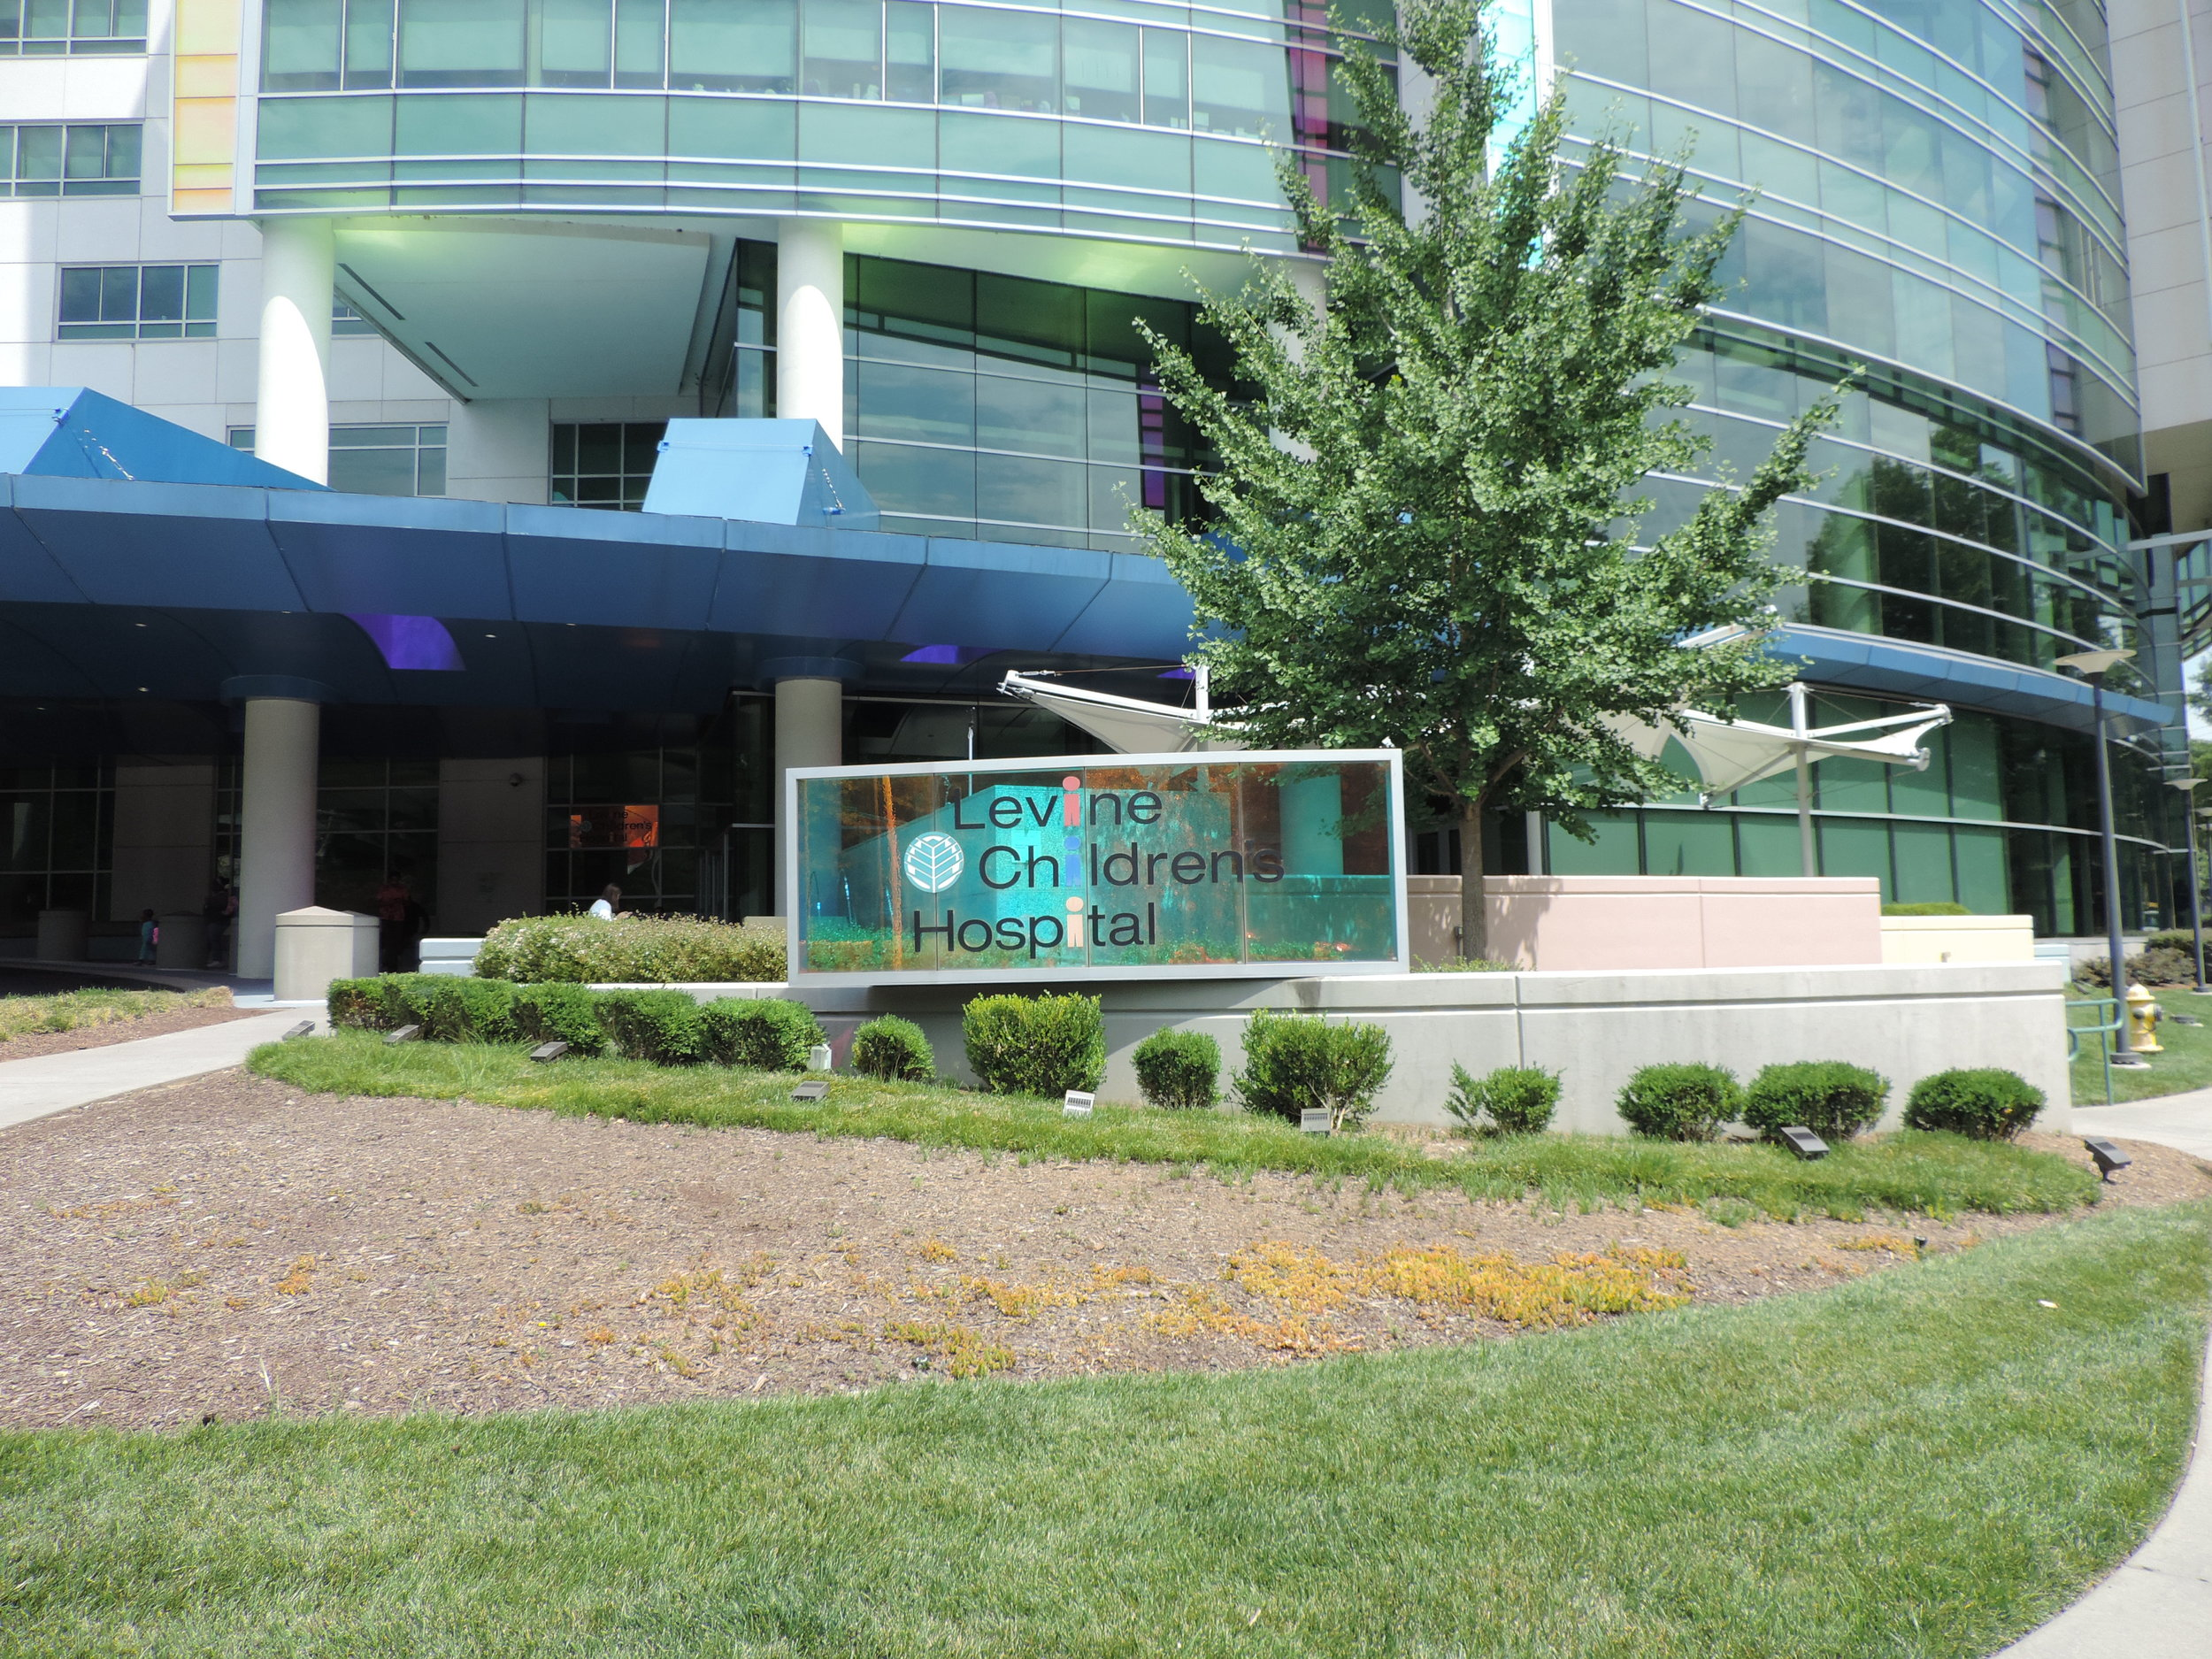 Levine Children's Hospital Project by EBS, Exterior Building Services, LLC